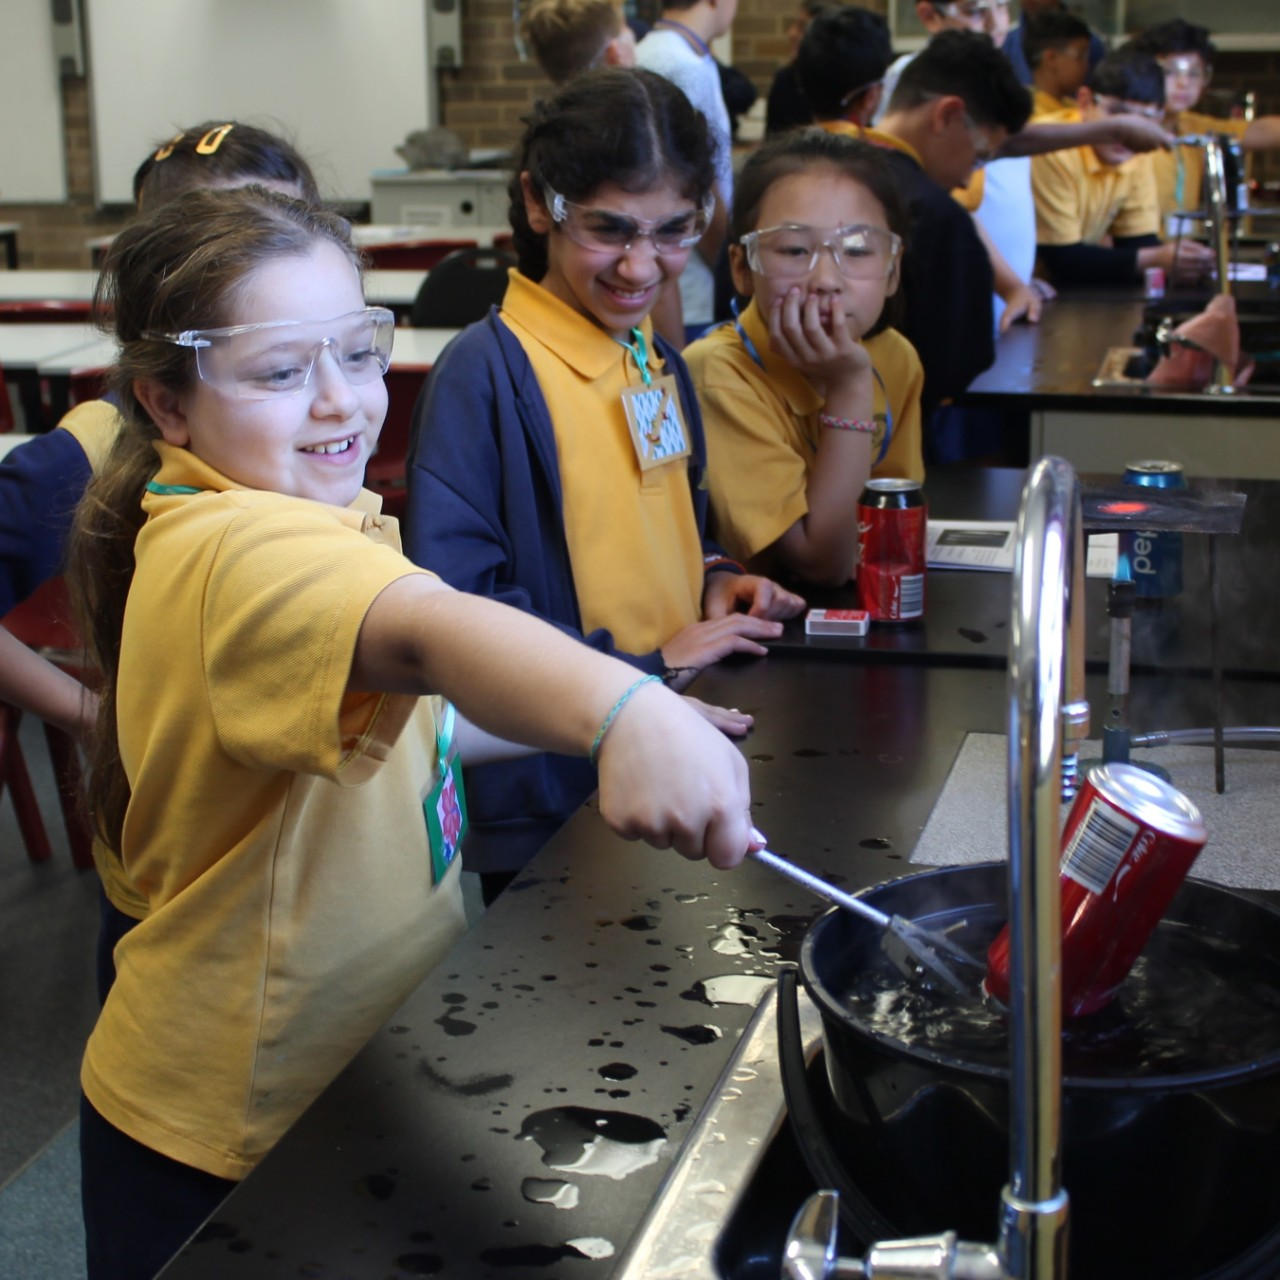 Primary school students enjoy a Science experiment